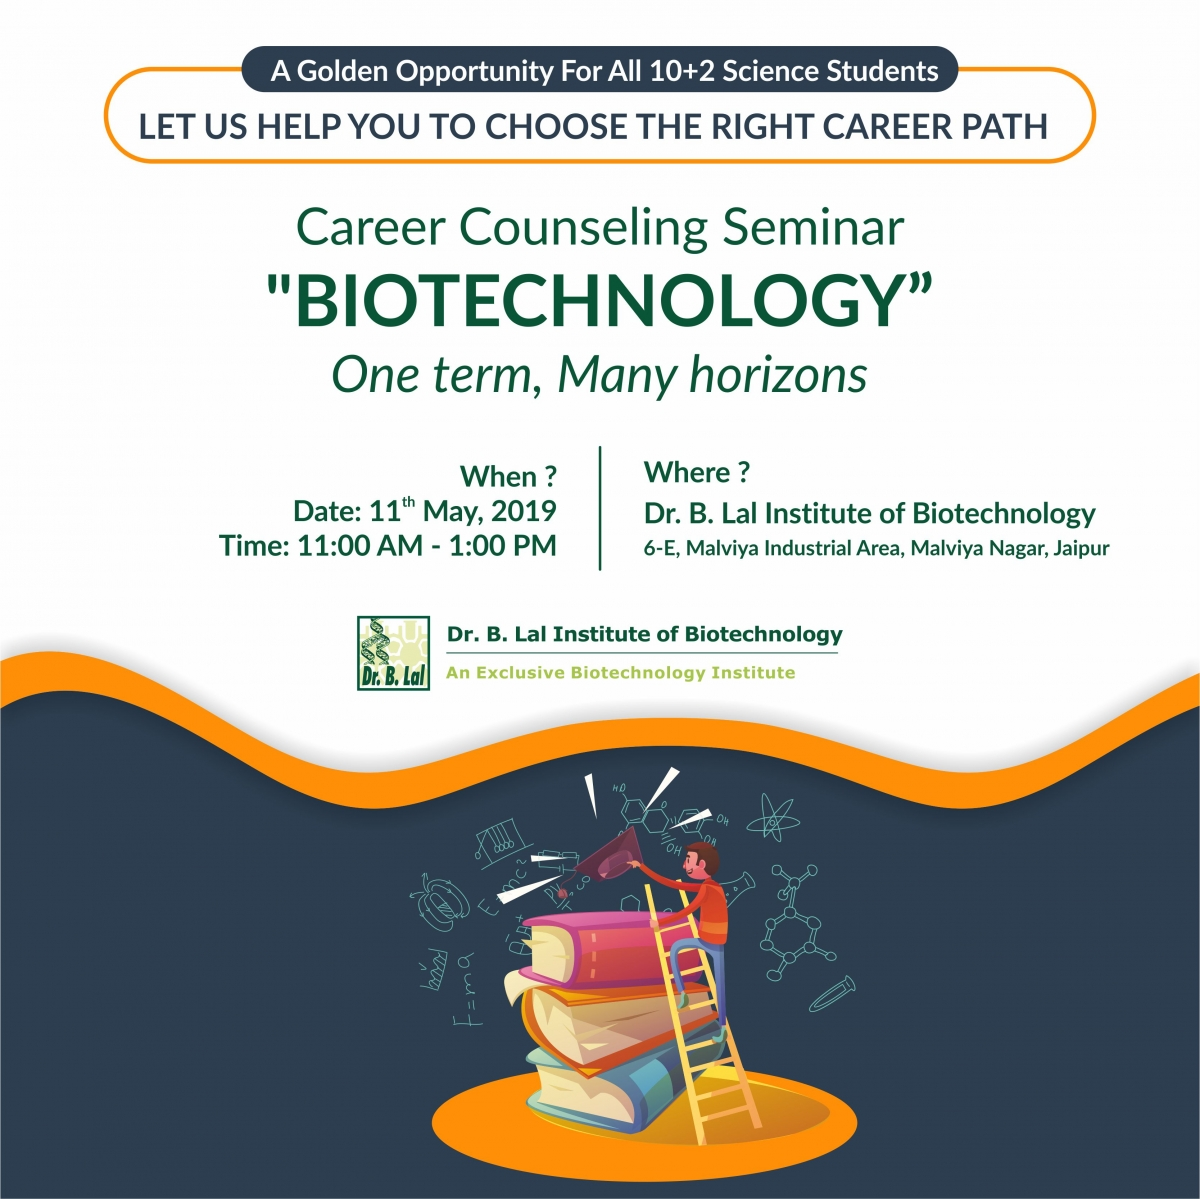 Career Counseling Seminar | Biotechnology: One term, Many horizons